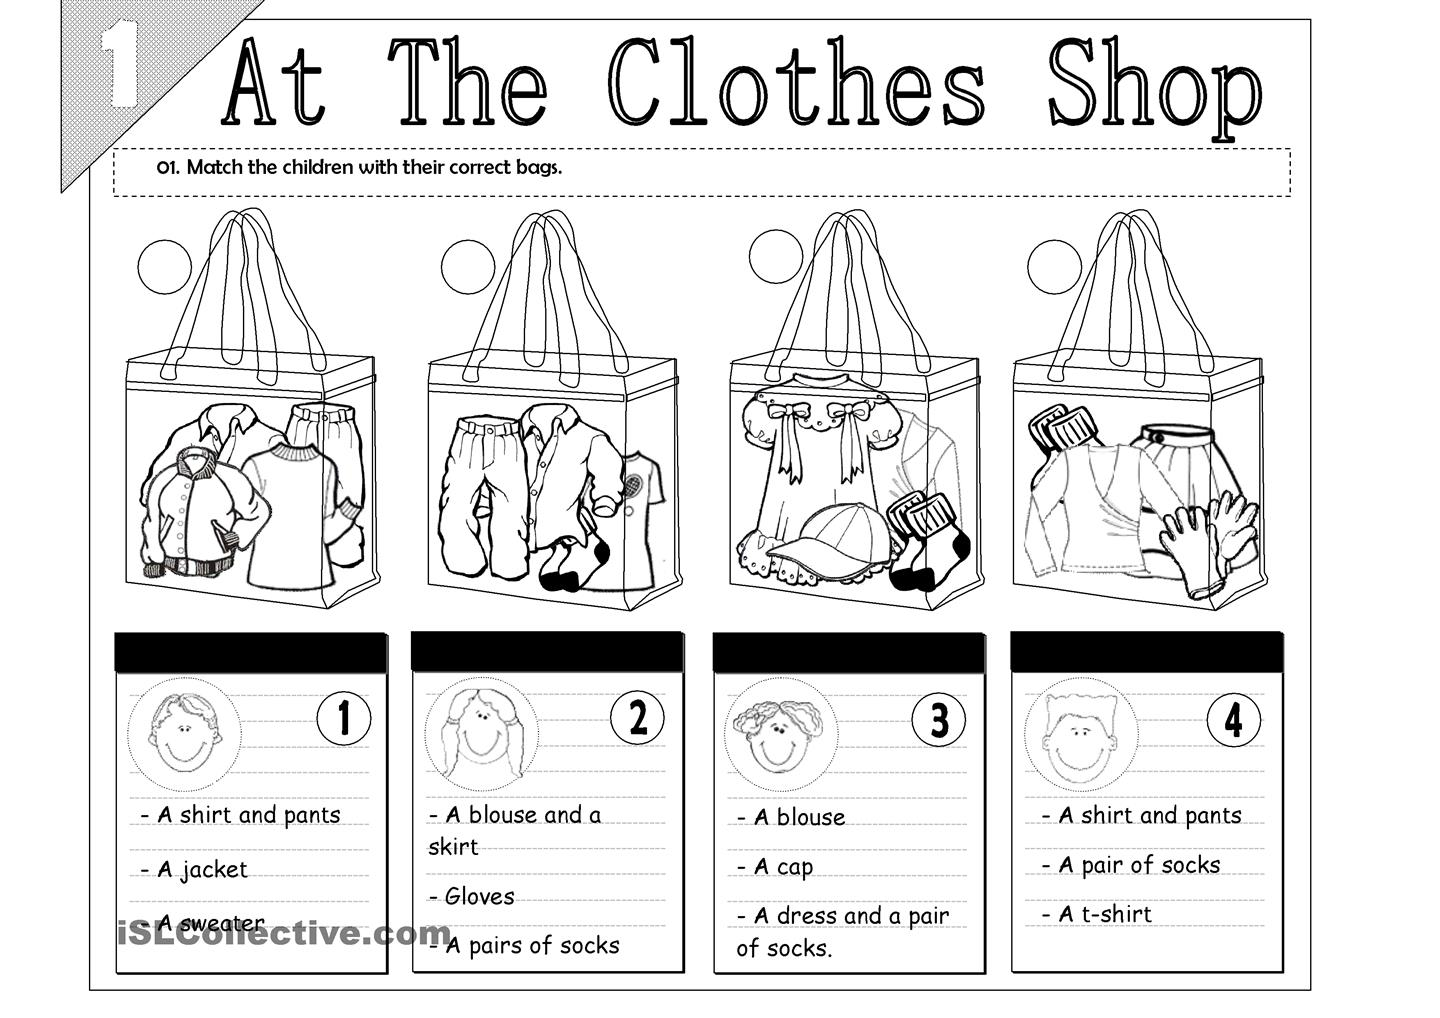 full_1141_at_the_clothes_shop_1